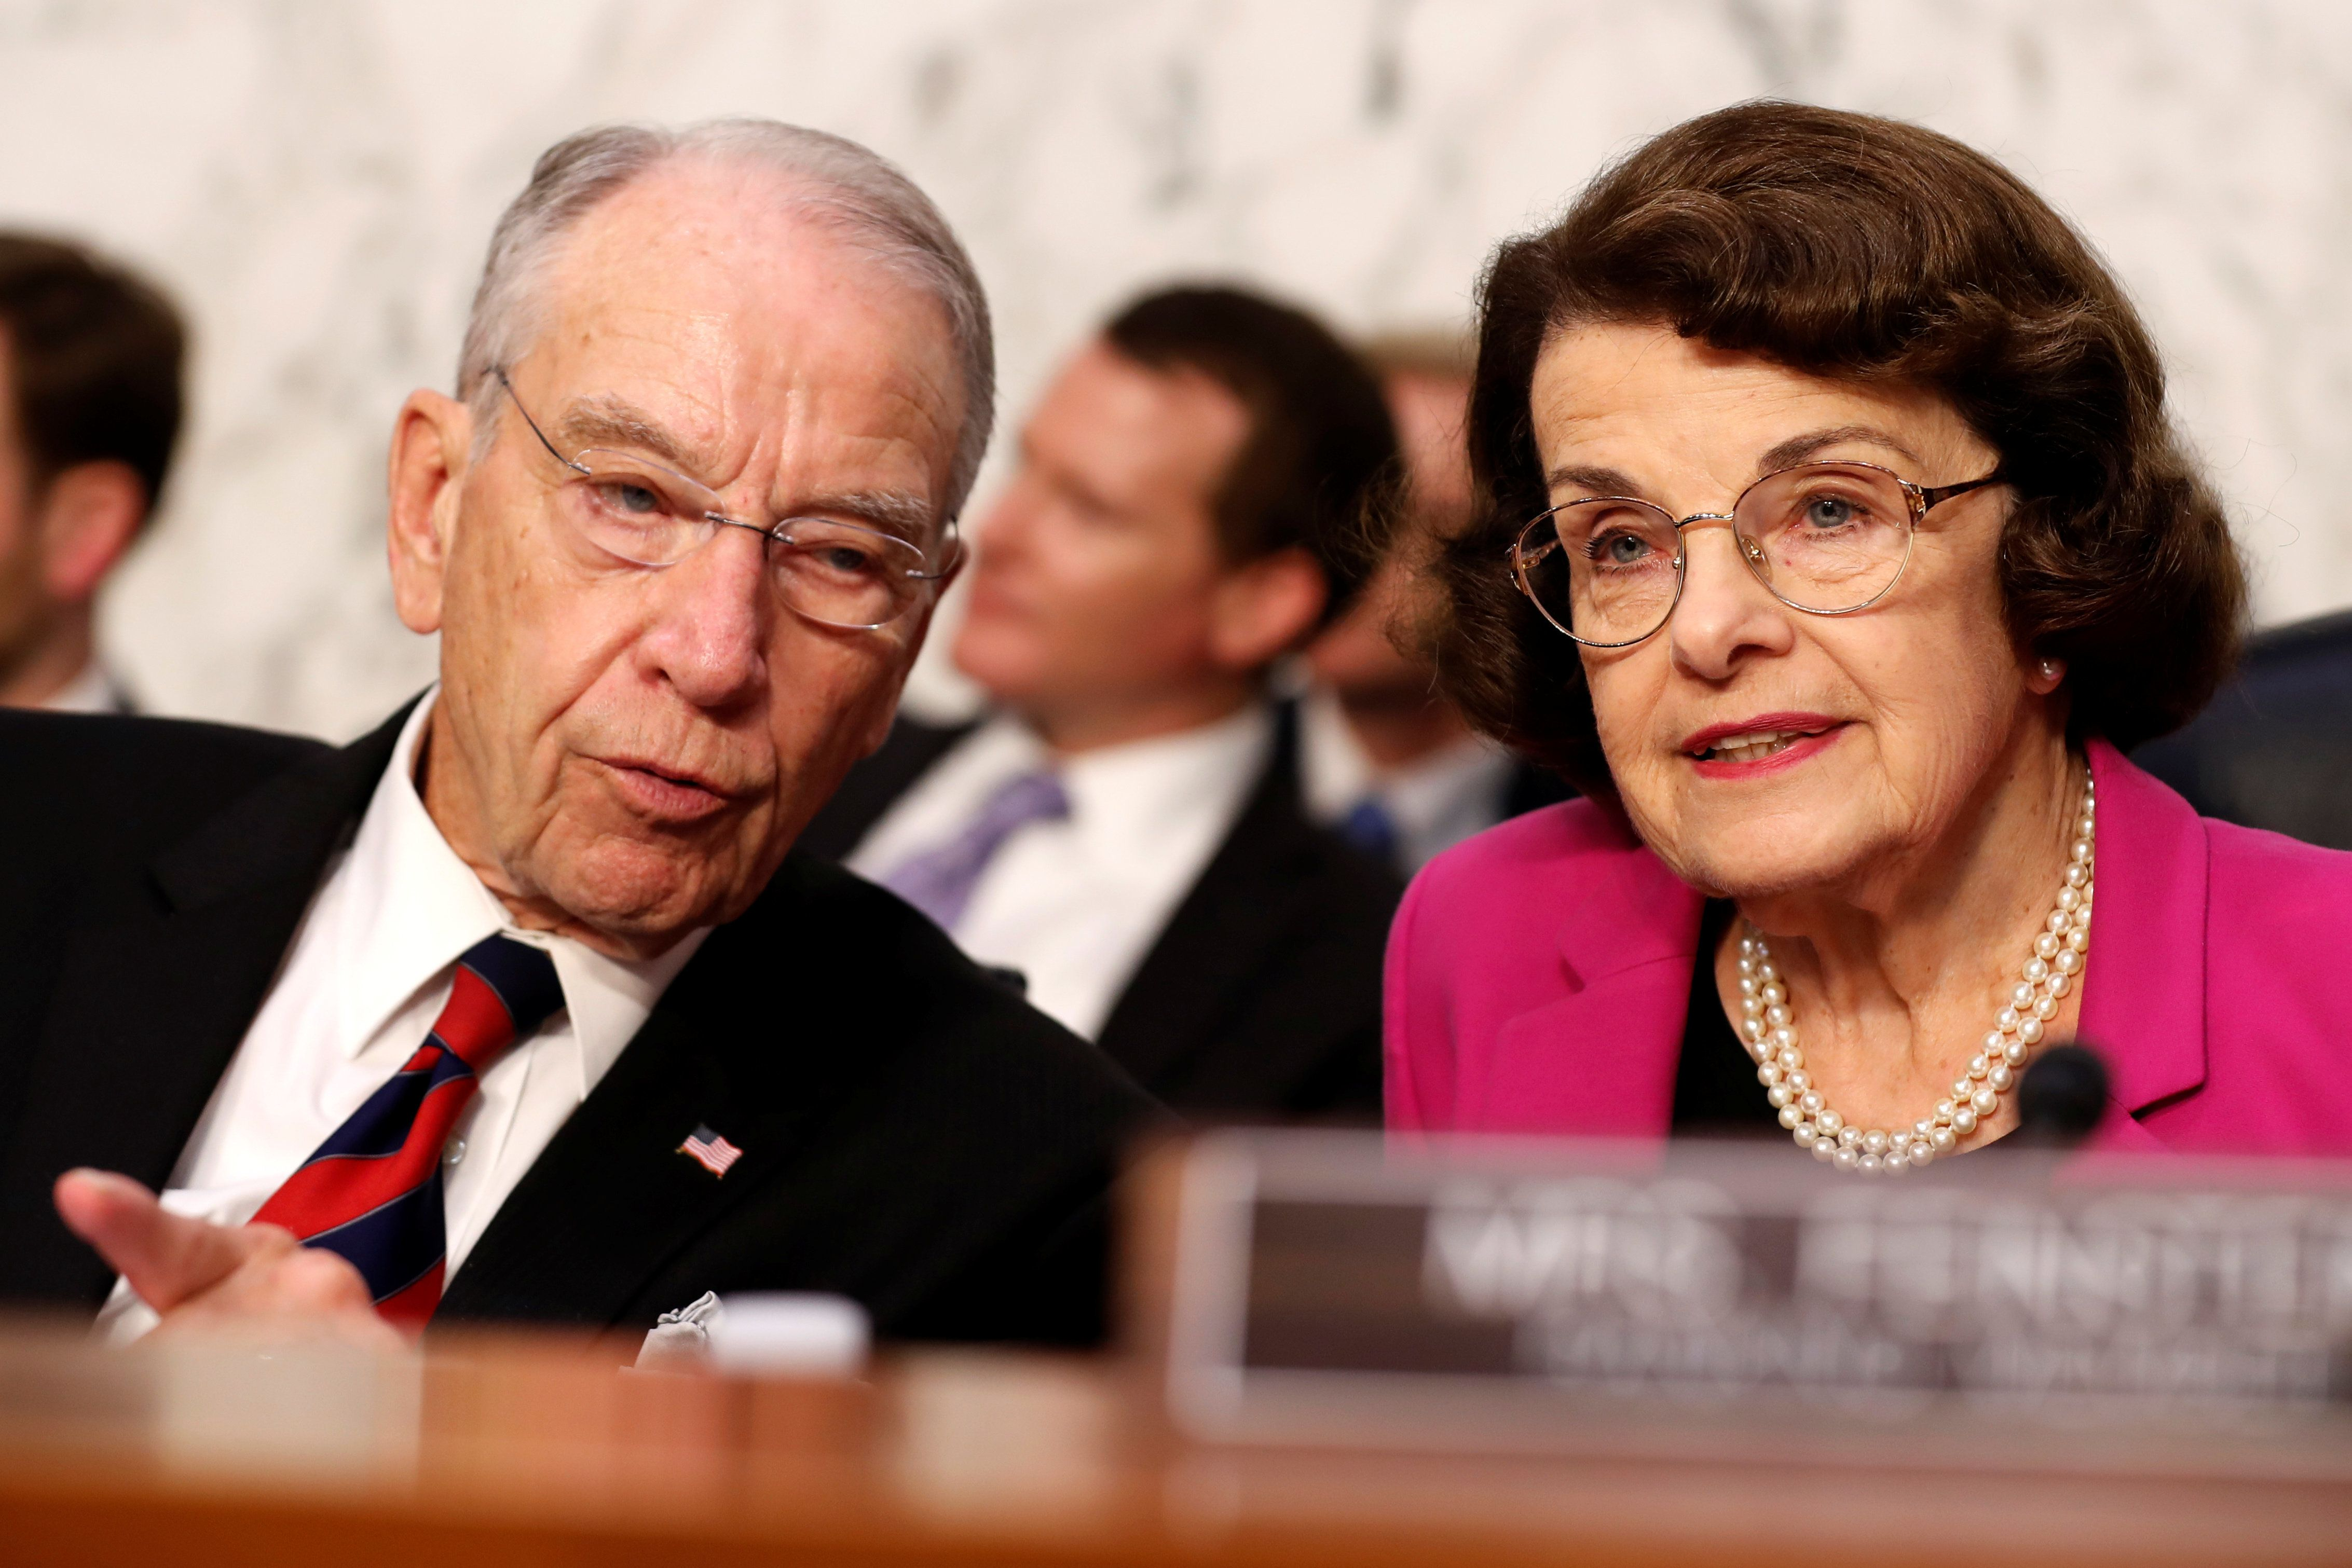 U.S. Senators Chuck Grassley (R-IA) and Dianne Feinstein (D-CA) talk together during U.S. Supreme Court nominee Judge Brett Kavanaugh's U.S. Senate Judiciary Committee confirmation hearing on Capitol Hill in Washington, U.S., September 4, 2018. REUTERS/Joshua Roberts